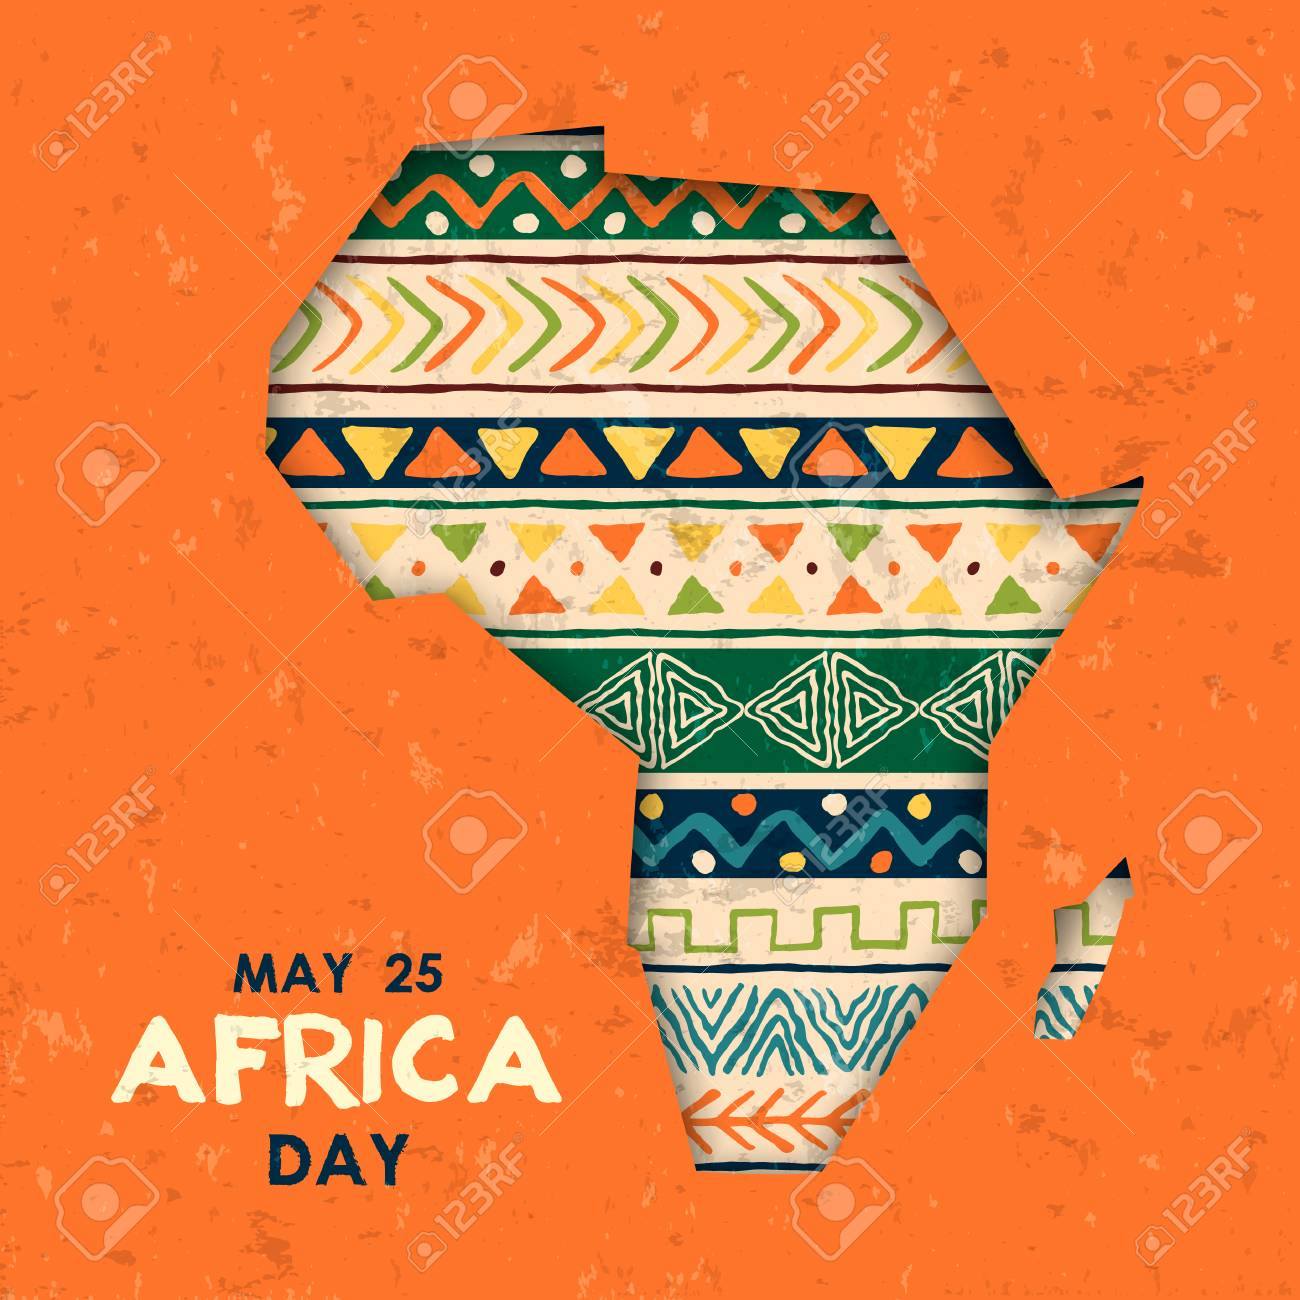 Africa Day greeting card illustration for 25 may celebration. African continent papercut map with traditional tribal art decoration. - 122582308